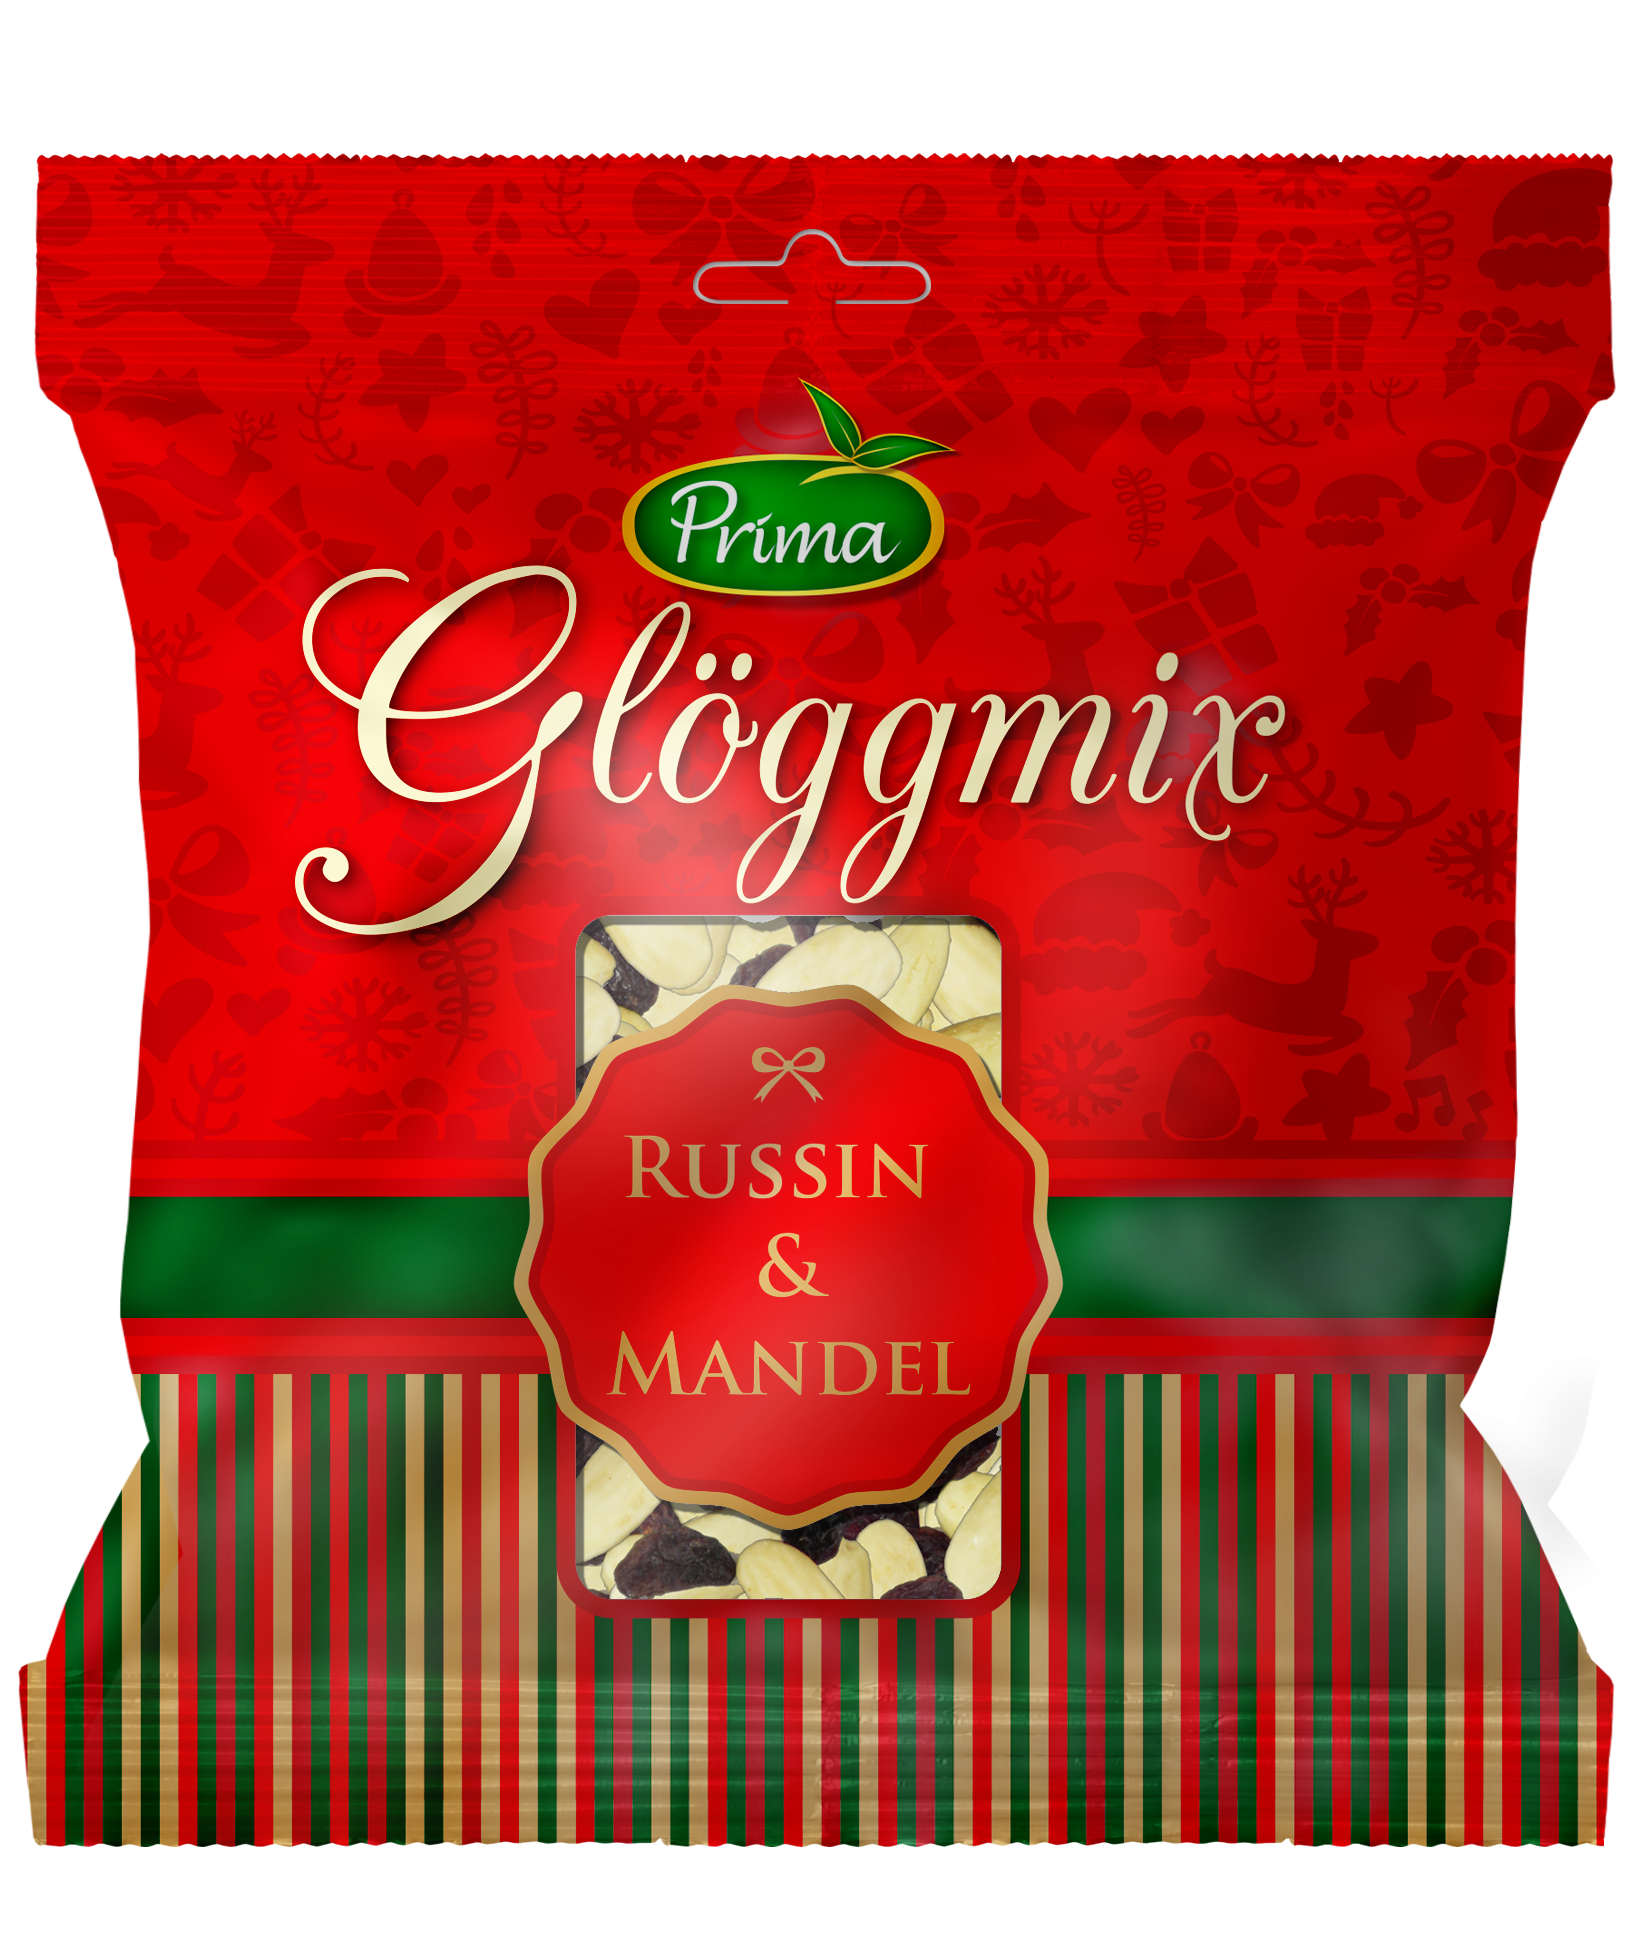 """Glöggmix - For adding in the traditional Swedish drink of spiced wine called """"Glögg"""". Peeled almonds and raisinsIngrediens:Almond and raisin"""